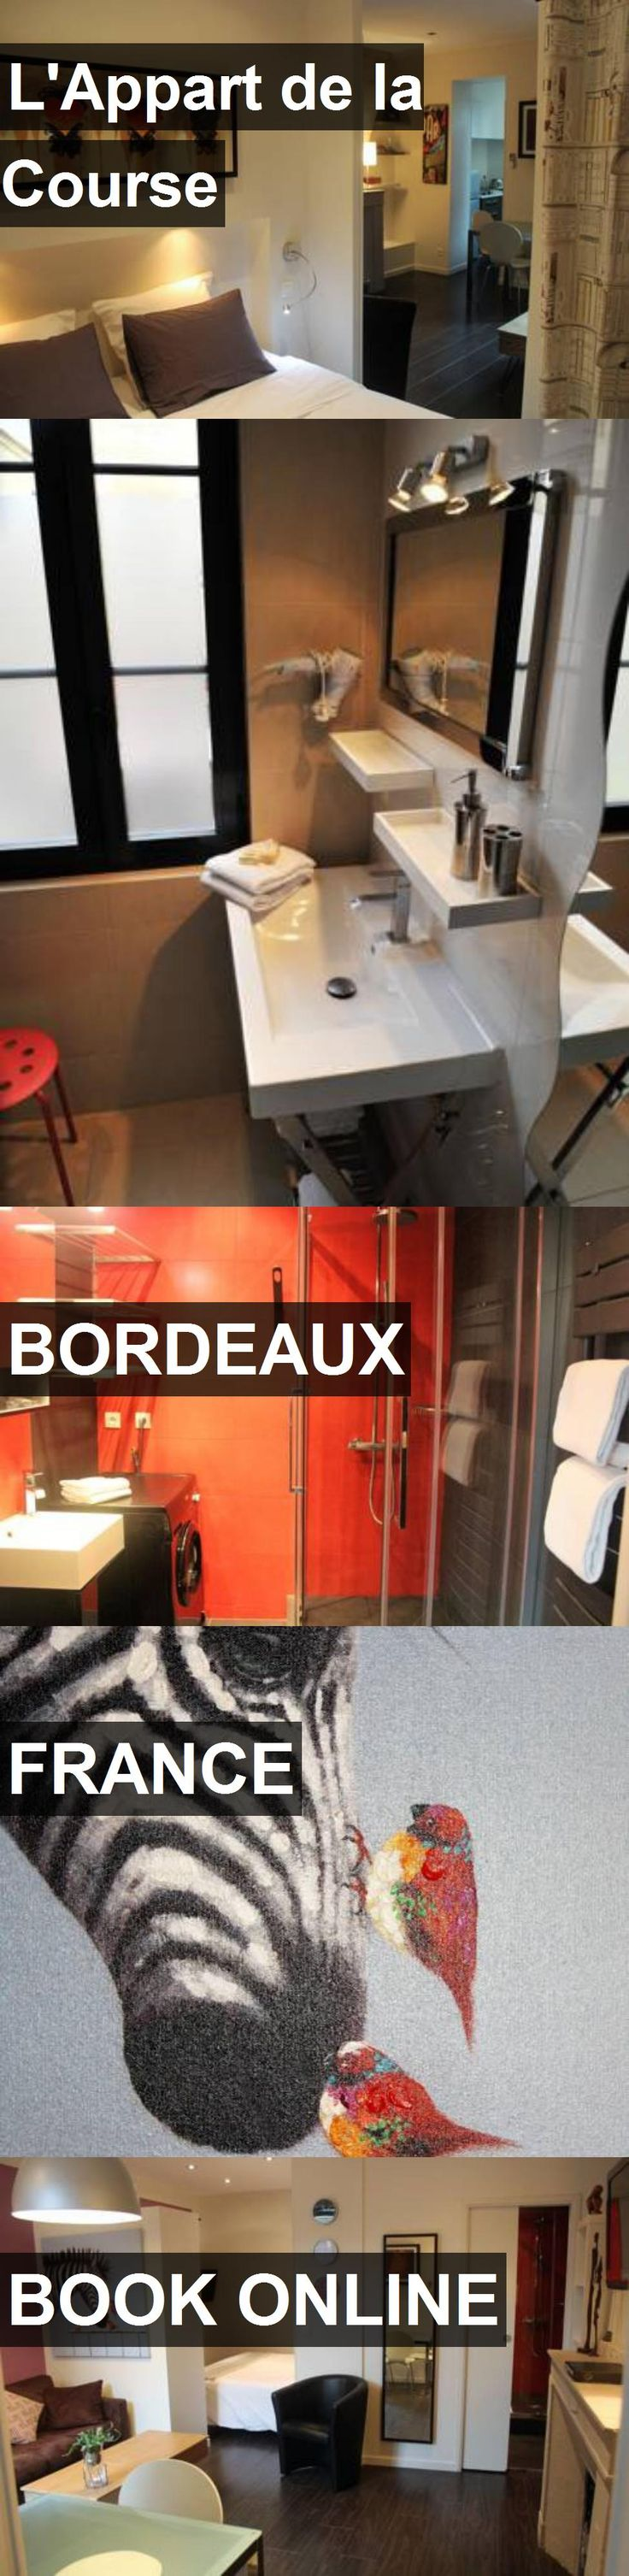 Hotel L'Appart de la Course in Bordeaux, France. For more information, photos, reviews and best prices please follow the link. #France #Bordeaux #travel #vacation #hotel